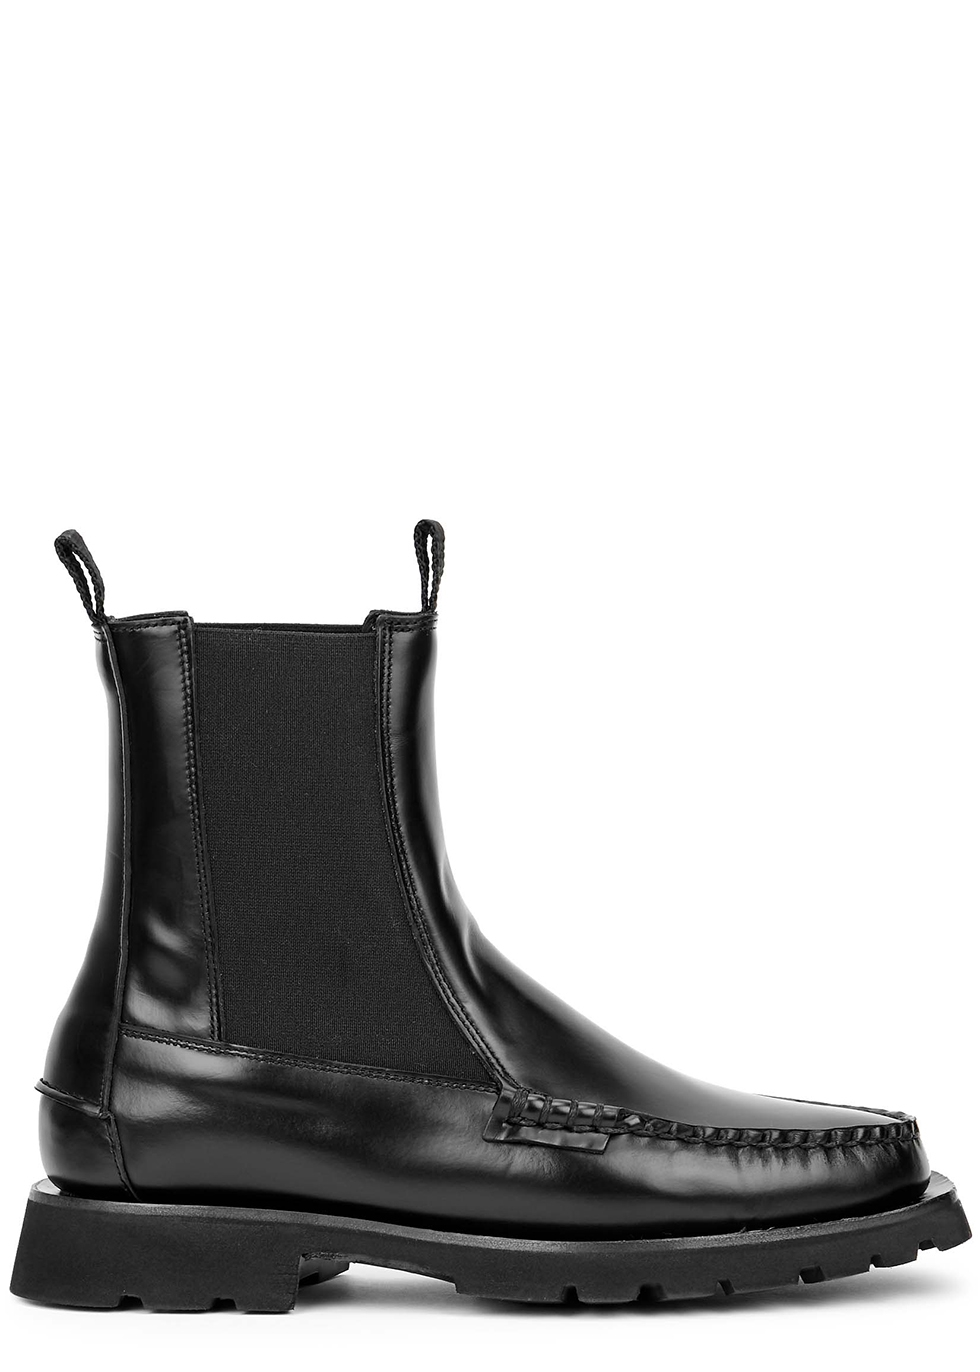 Alda black leather ankle boots